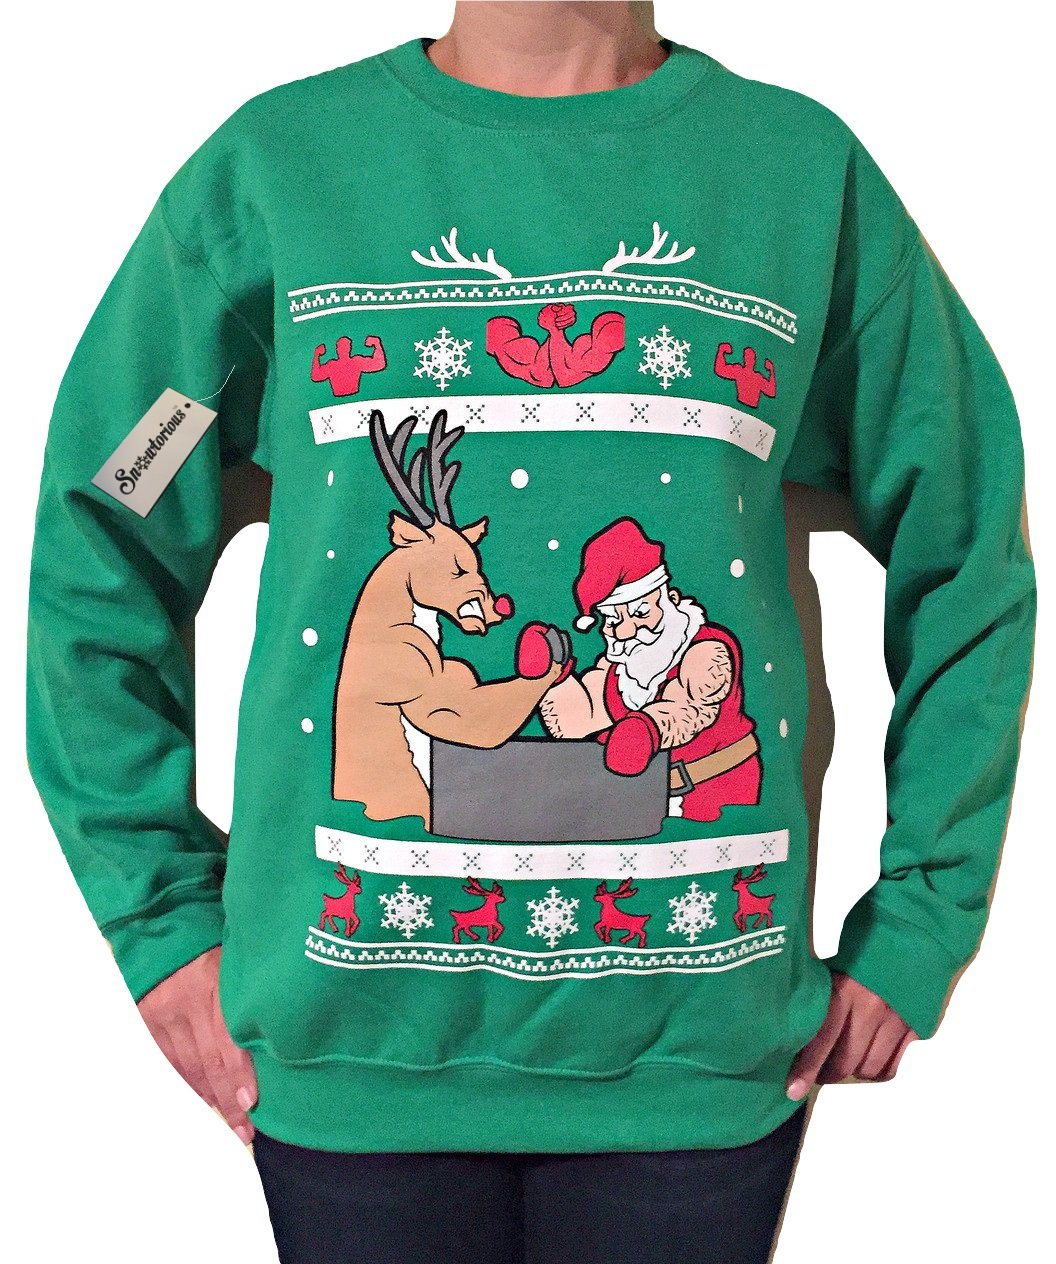 Arm Wrestling - Ugly Christmas Sweater (green, small) by Snowtorious